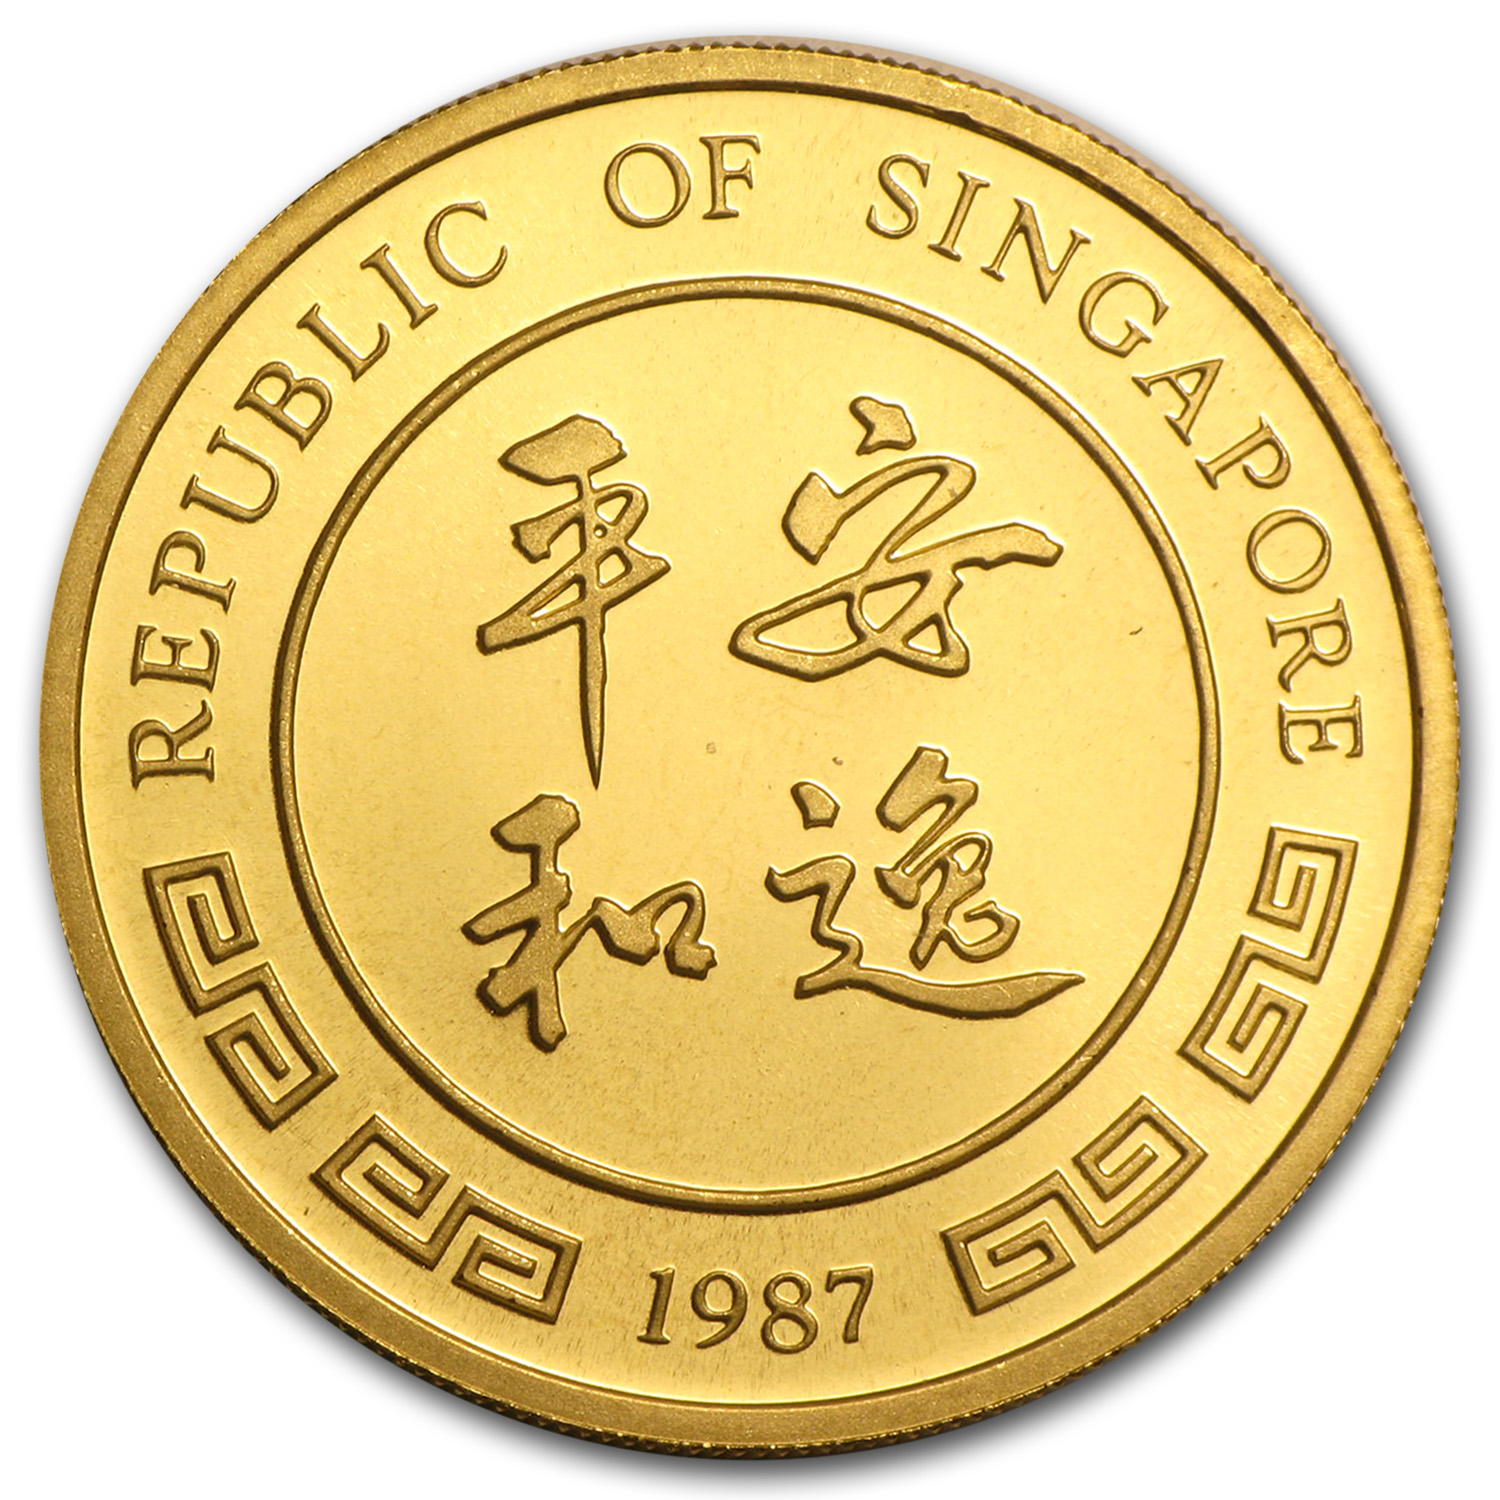 1987 1/2 oz Gold Singapore 50 Singold Rabbit Proof